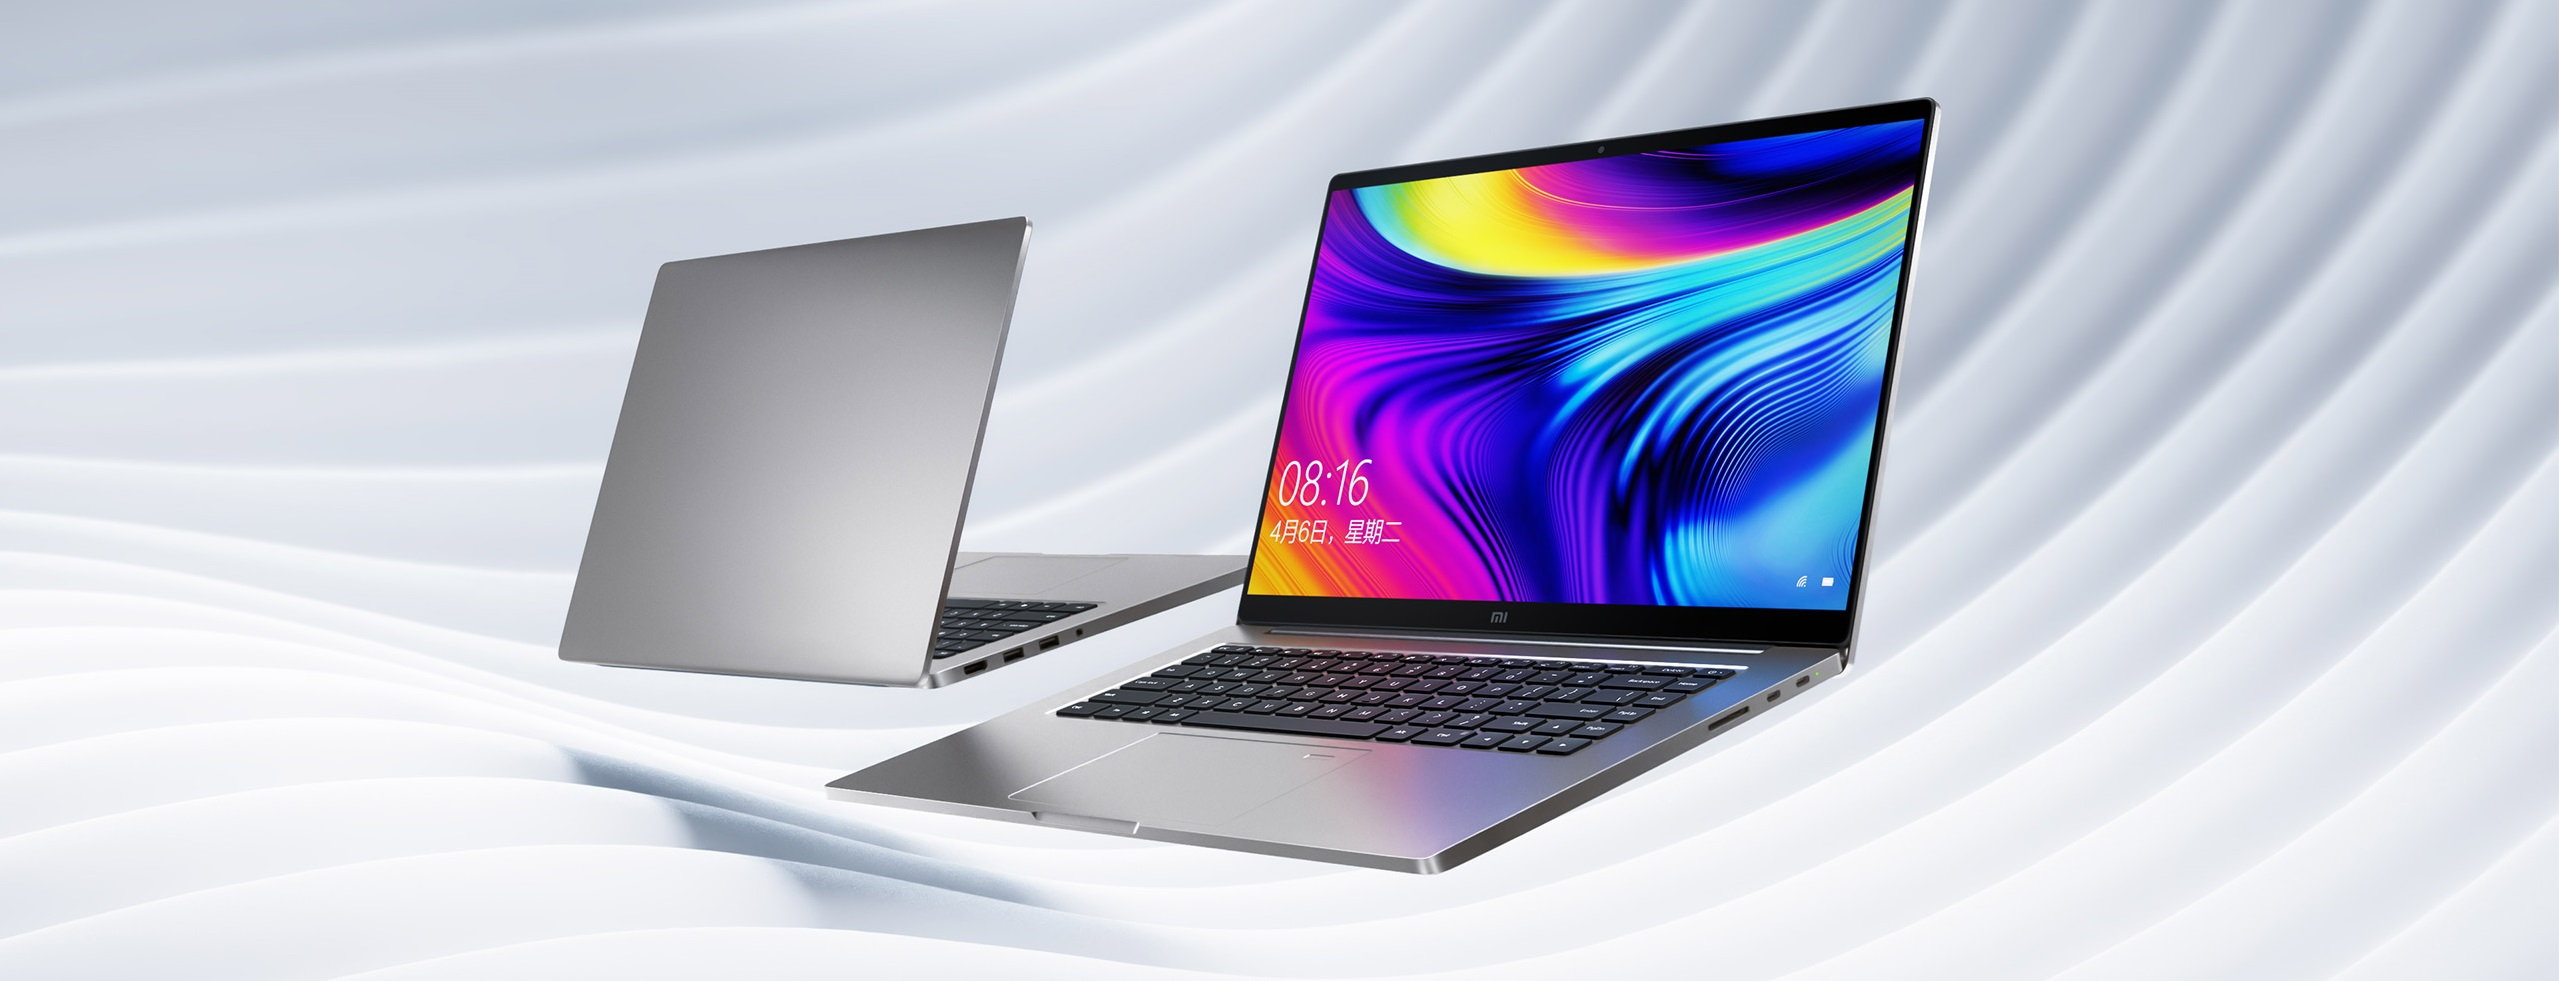 Xiaomi Mi Notebook Pro 15 2020 laptop